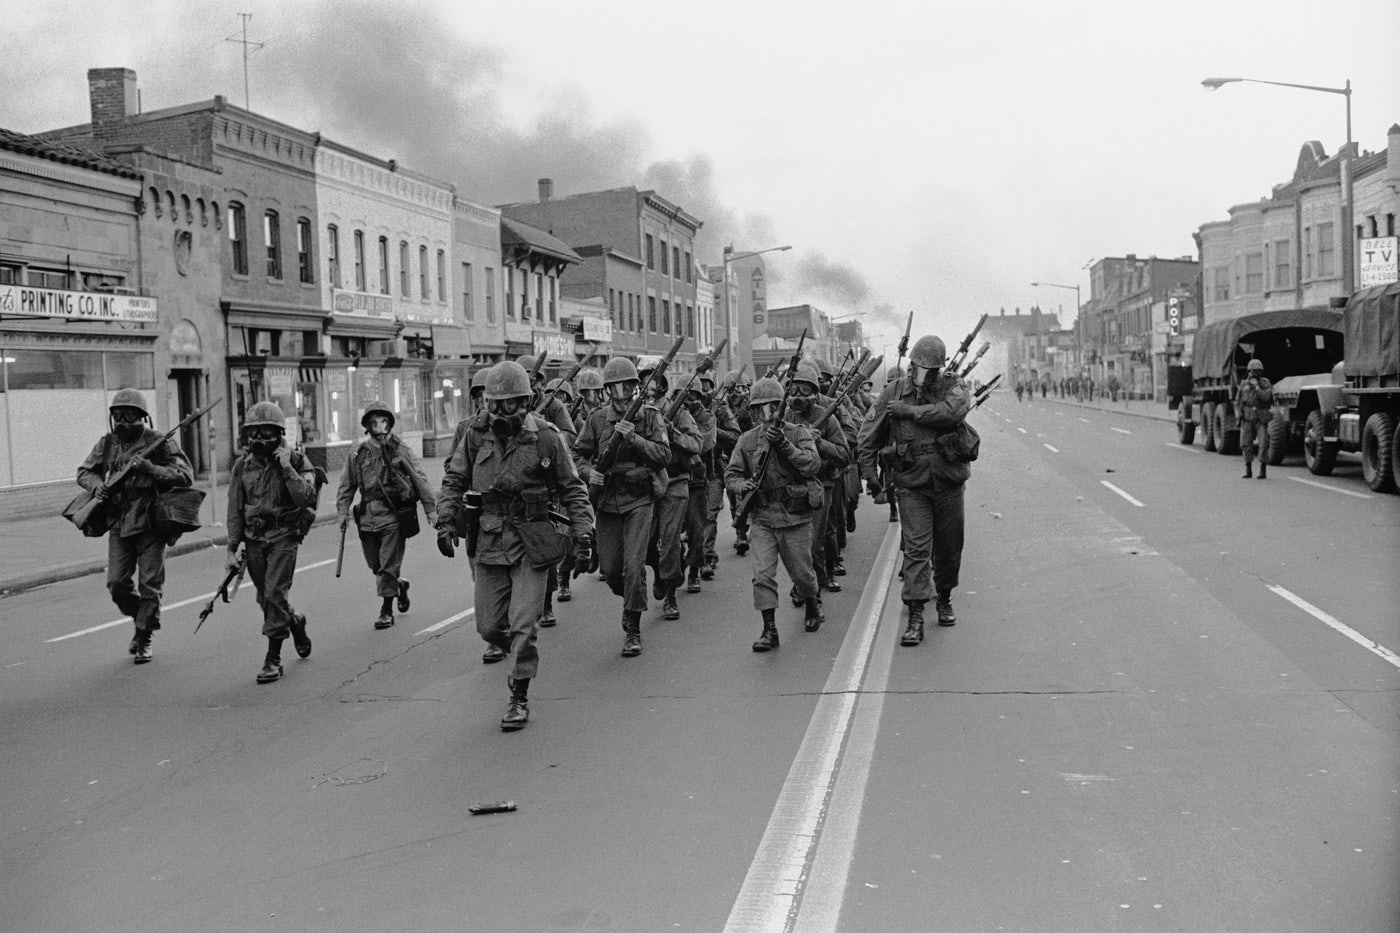 The Army was called out to deal with riots in Washington, D.C., following Martin Luther King's assassination in April 1968.